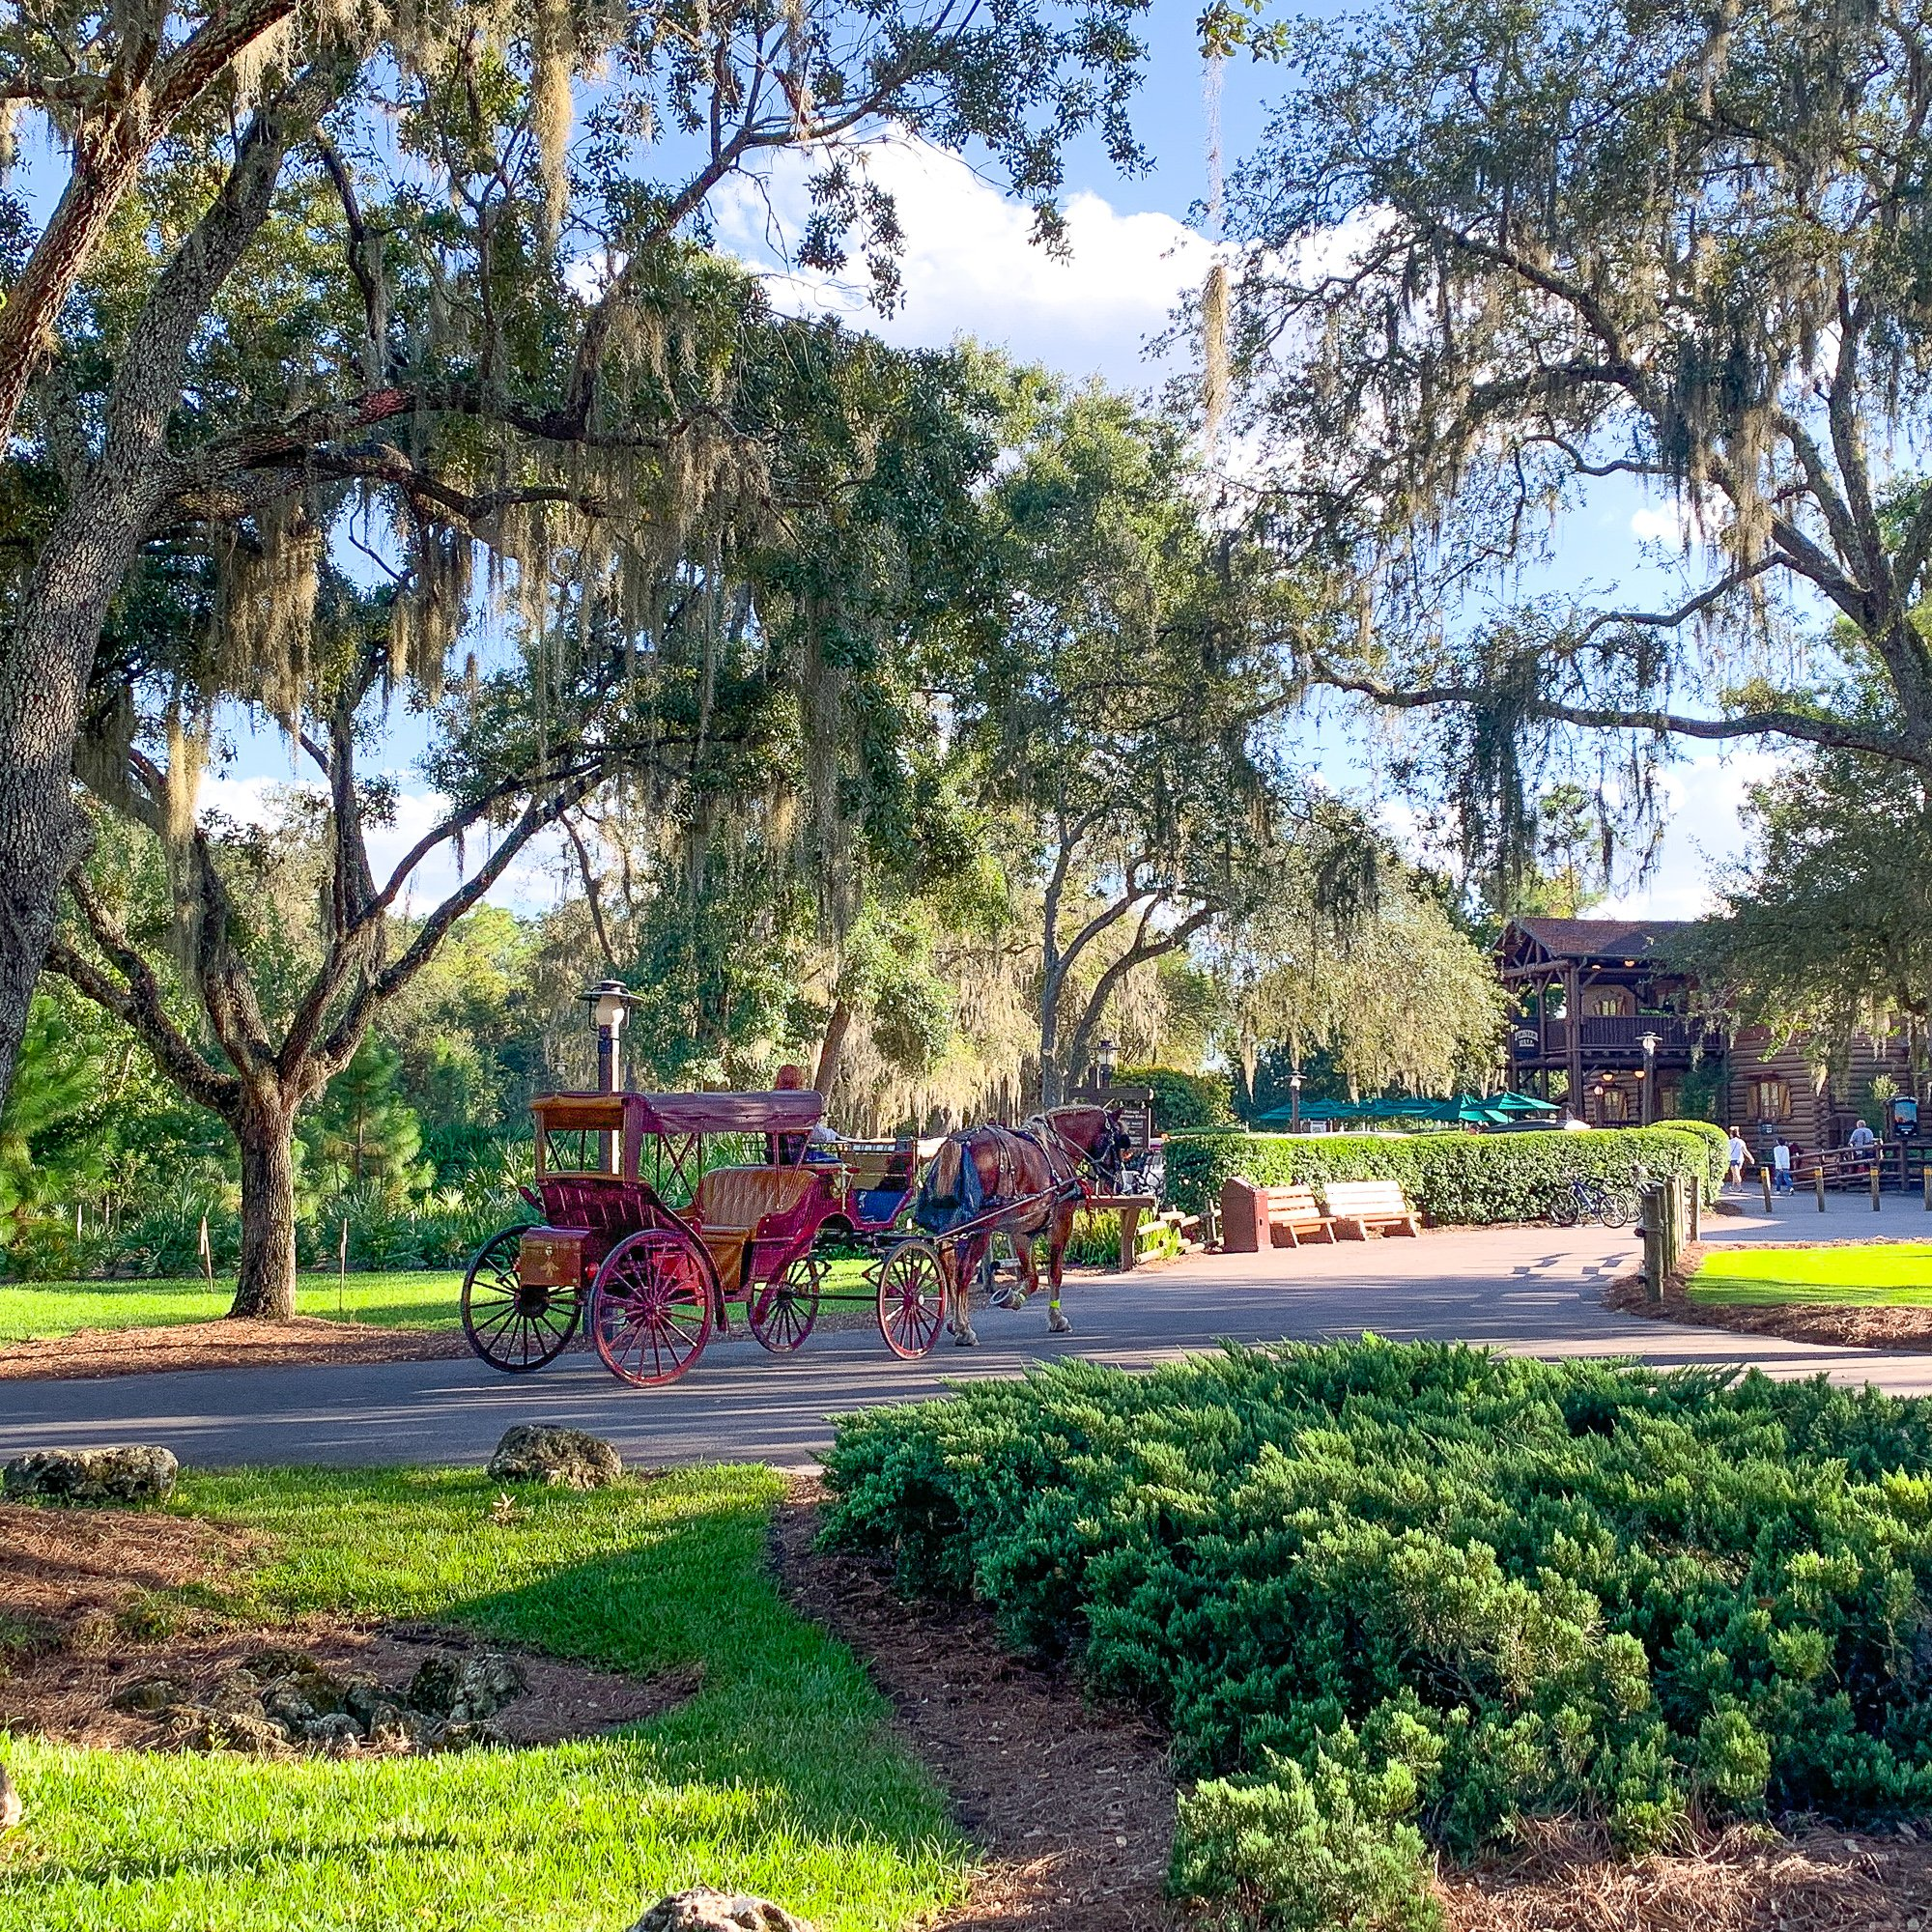 Carriage ride at Disney's Fort Wilderness Lodge